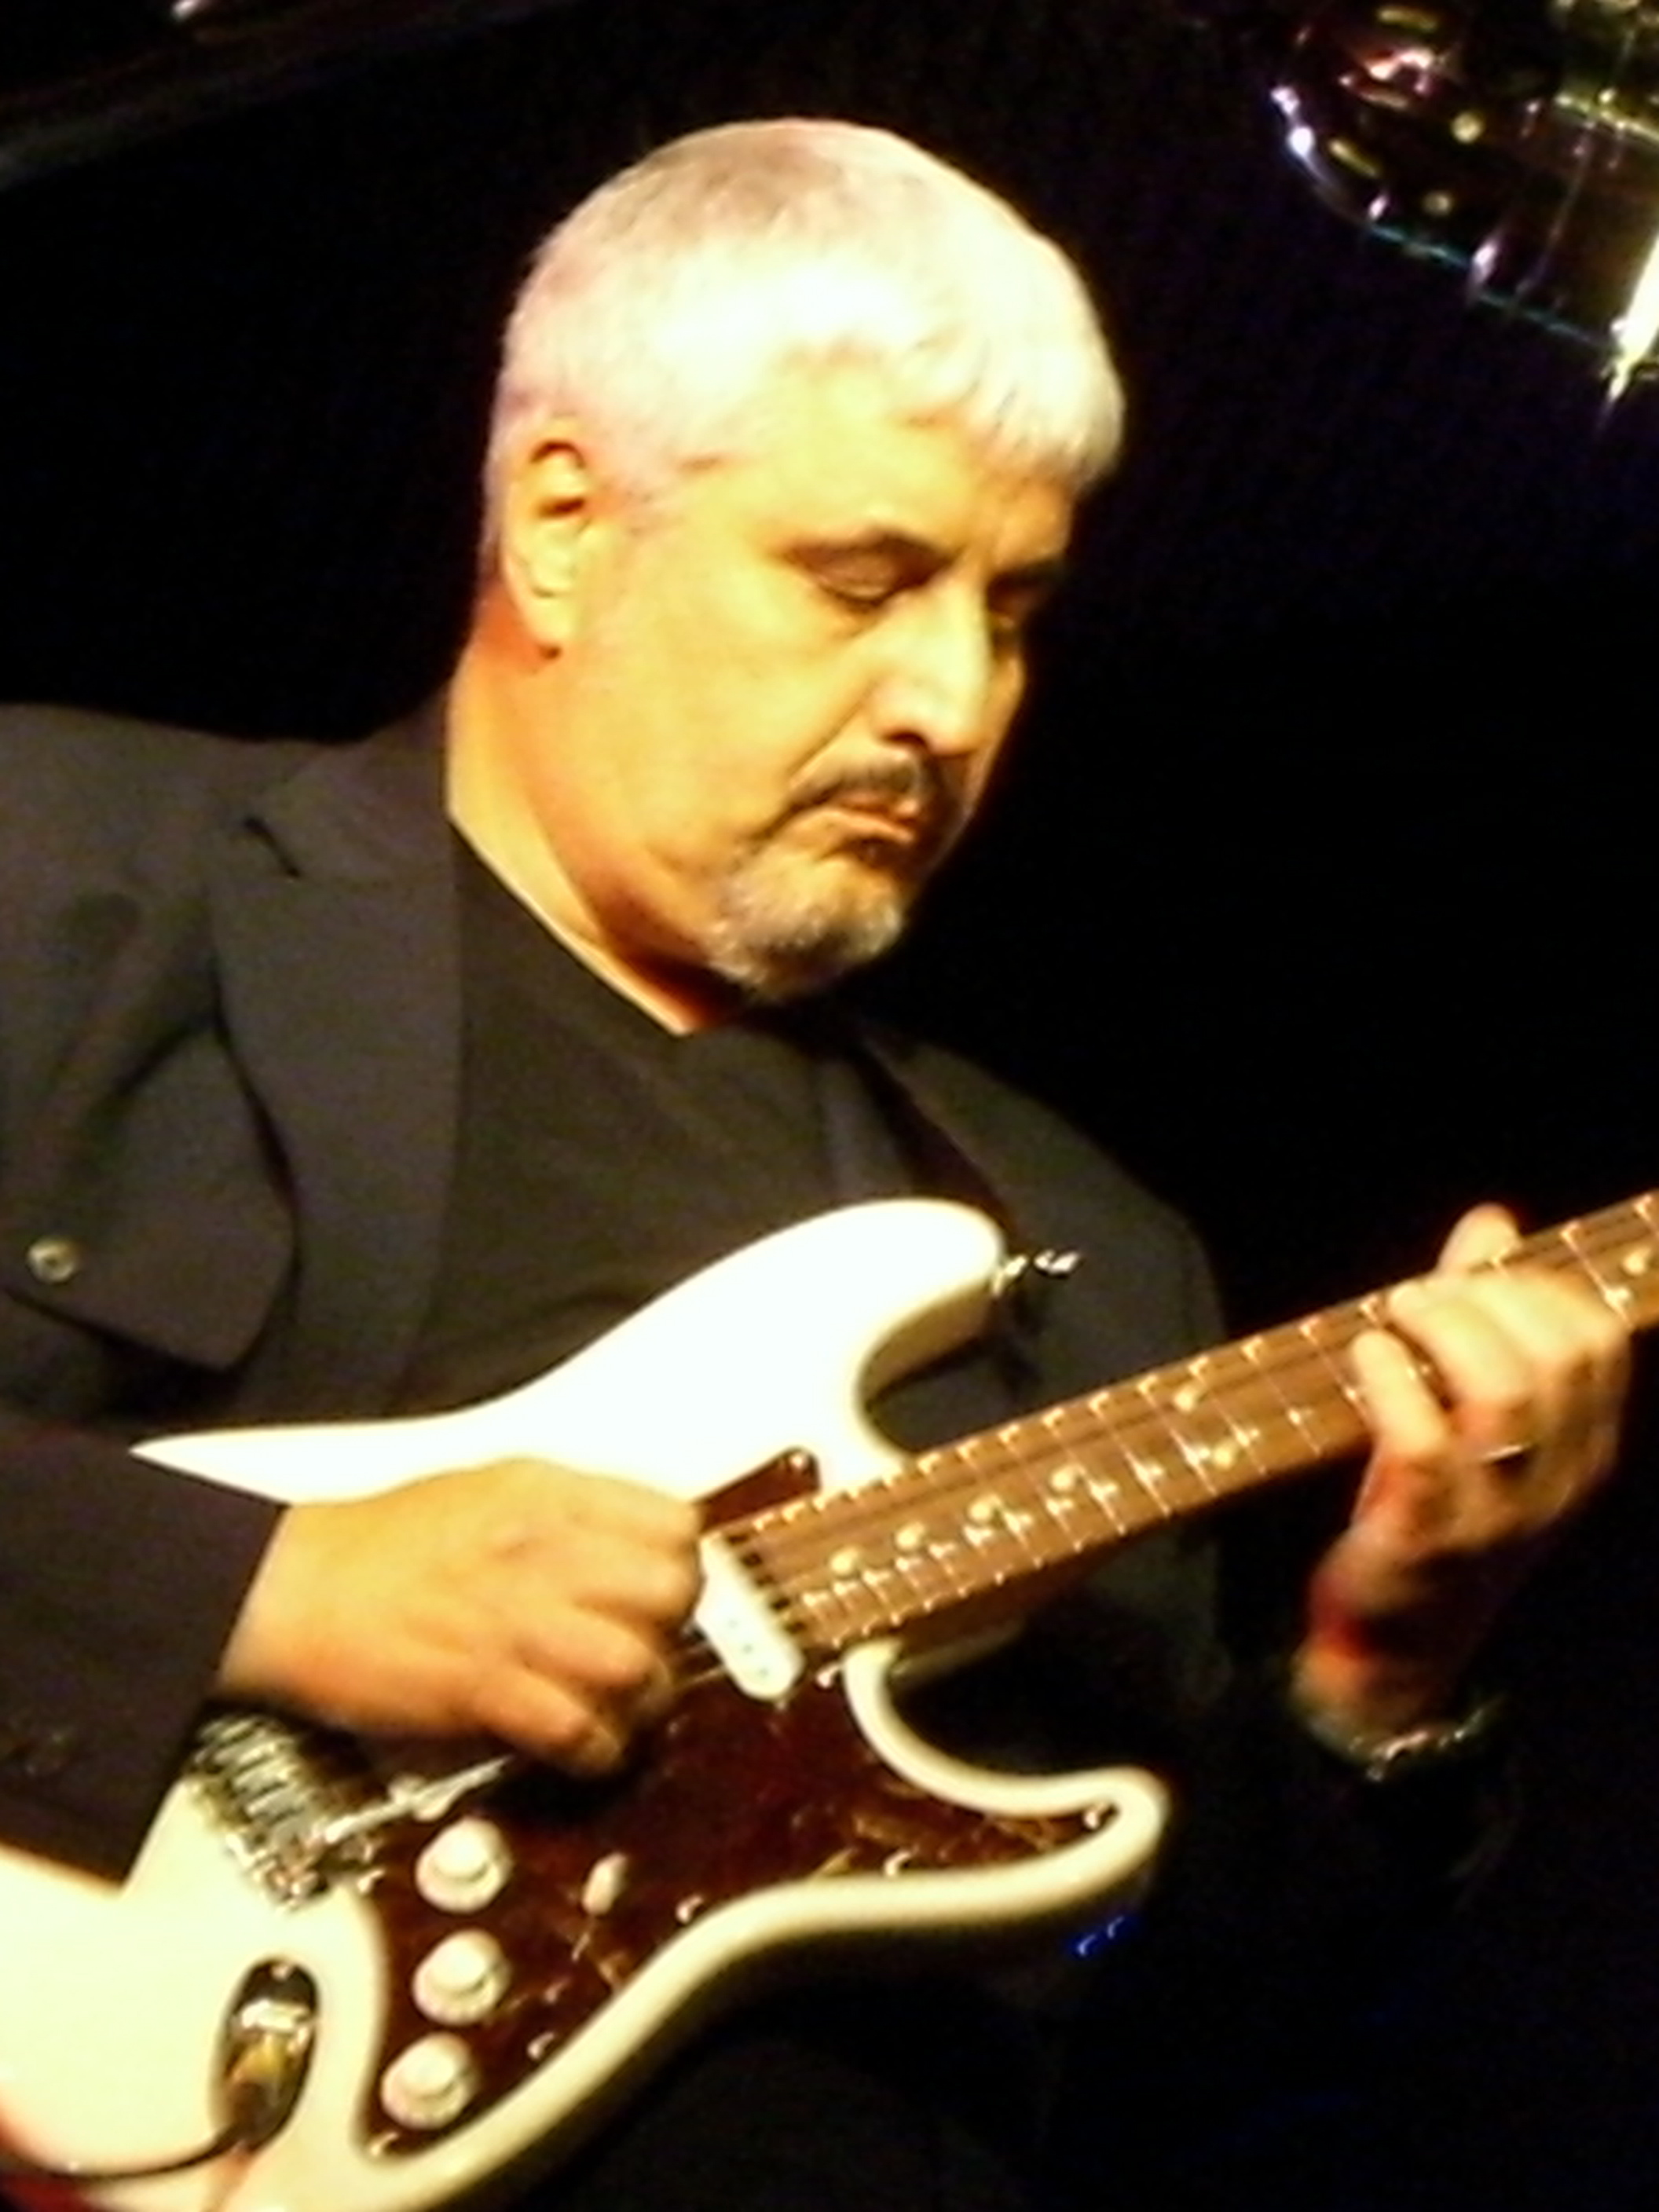 PINO DANIELE - Wikipedia, the free encyclopedia